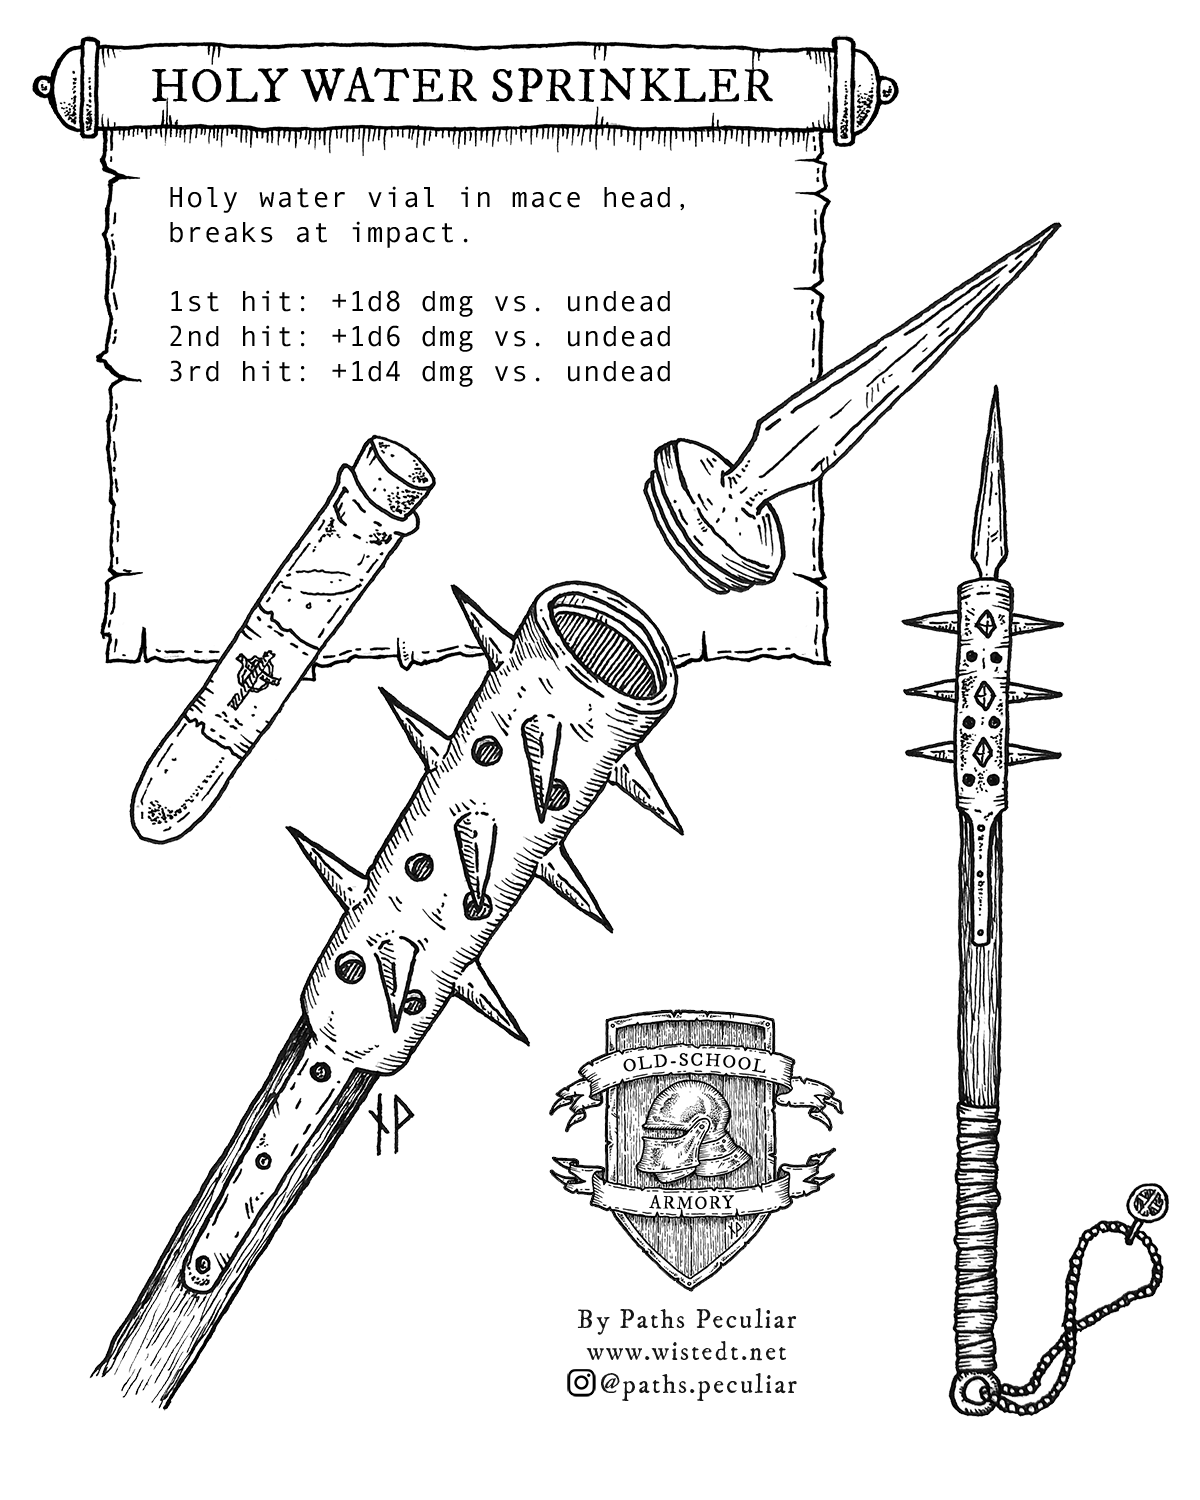 Image of a holy sprinkler mace weapon